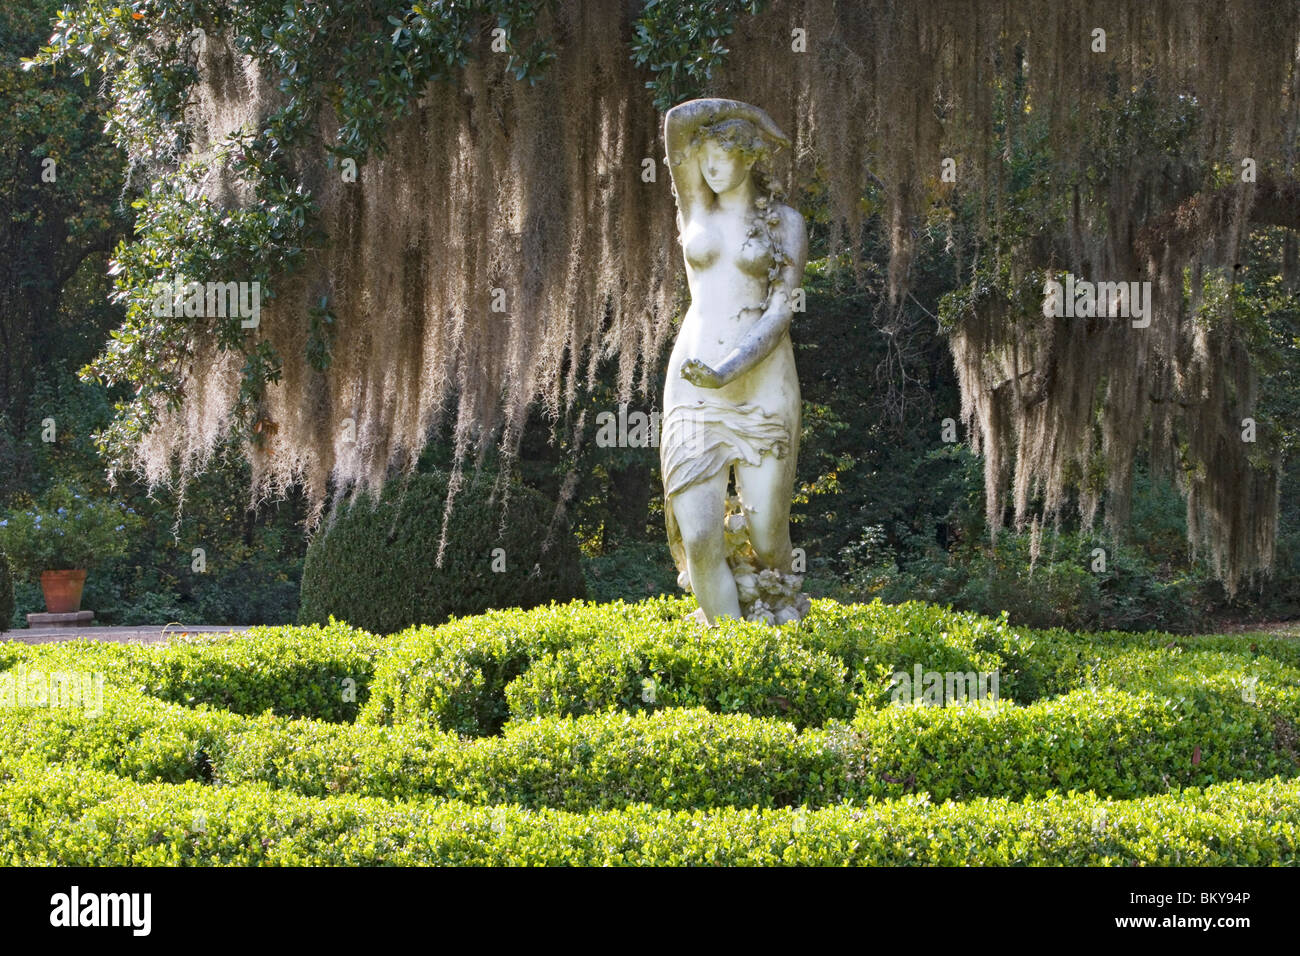 A statue and old oak trees overgrown with spanish moss, Afton Villa Gardens, St. Francisville, Louisiana, USA - Stock Image